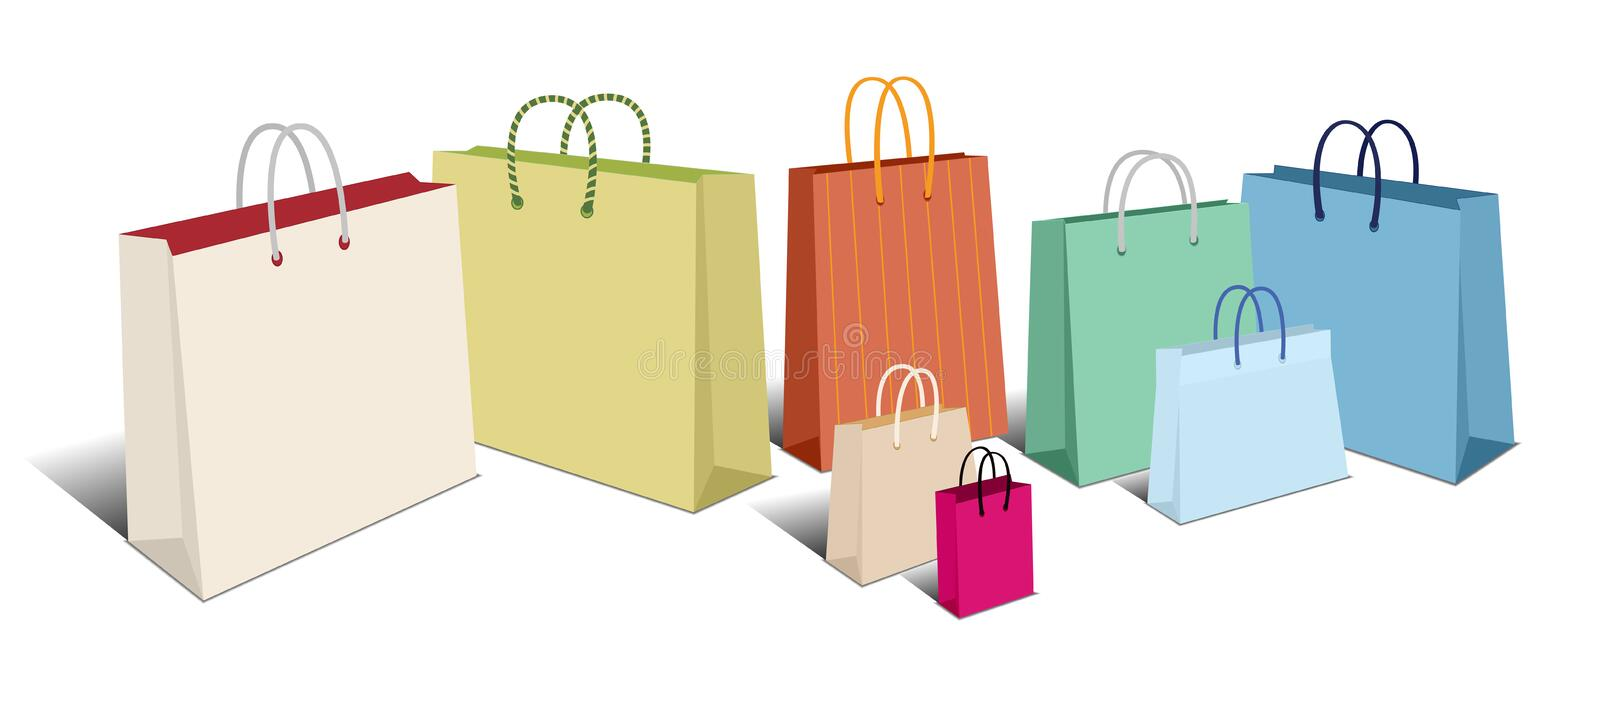 Retro Shopping Bags, Carrier Bags Icons Symbols royalty free illustration